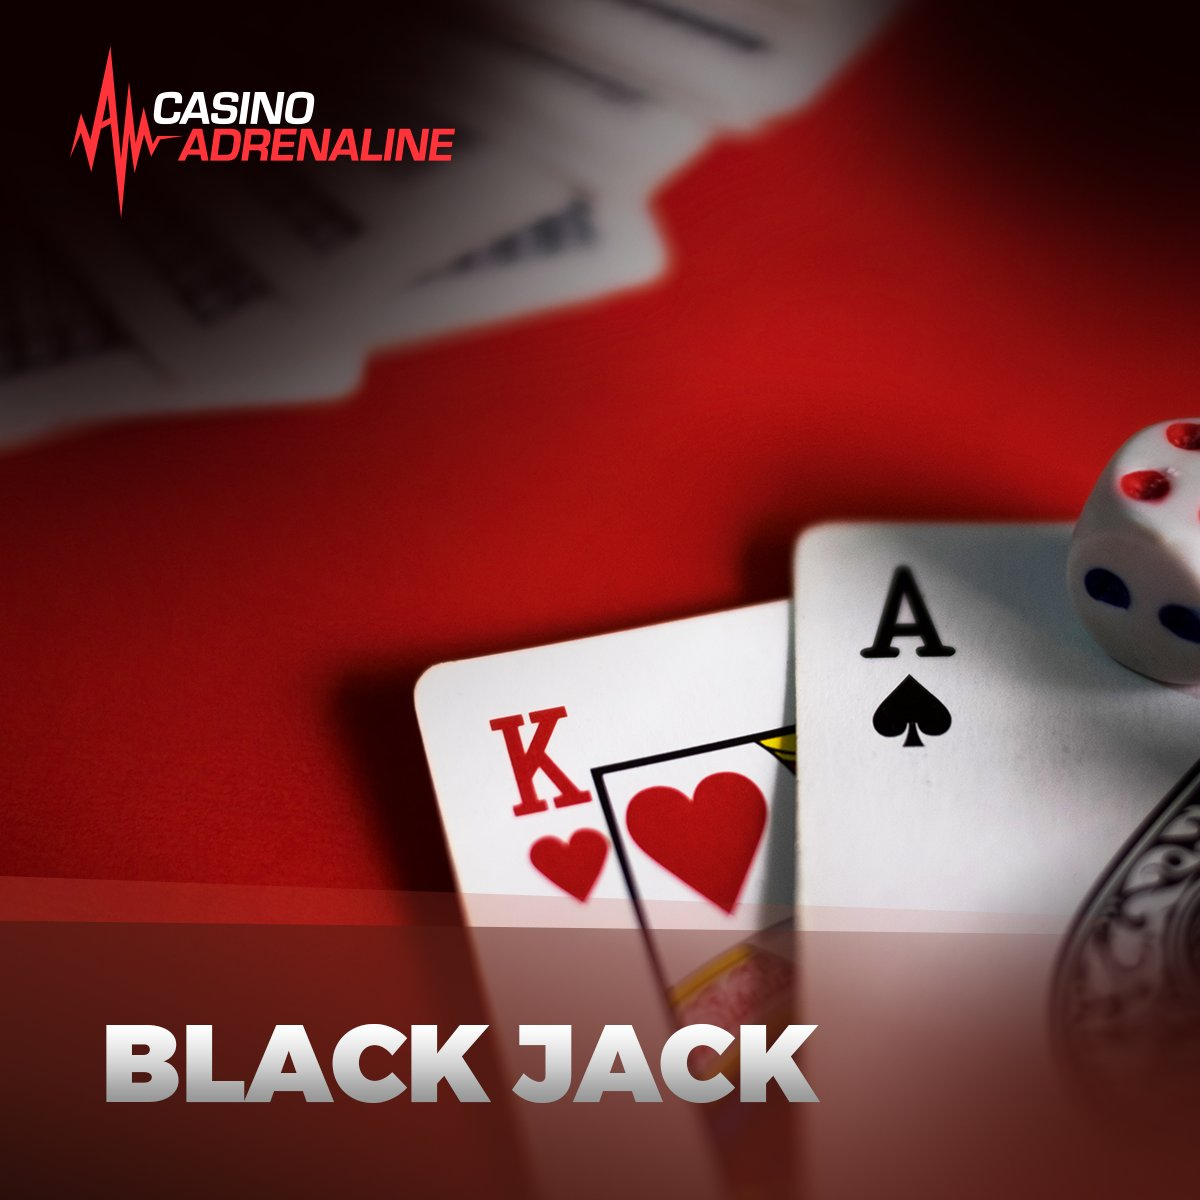 test Twitter Media - Blackjack is famous for its incredible low edge – 0.5%, with some players claiming this can be brought down to almost 0.4% – making it the most player-friendly casino game!  Check out Casino Adrenaline LIVE Black Jack! https://t.co/3pb5M9Im6Y